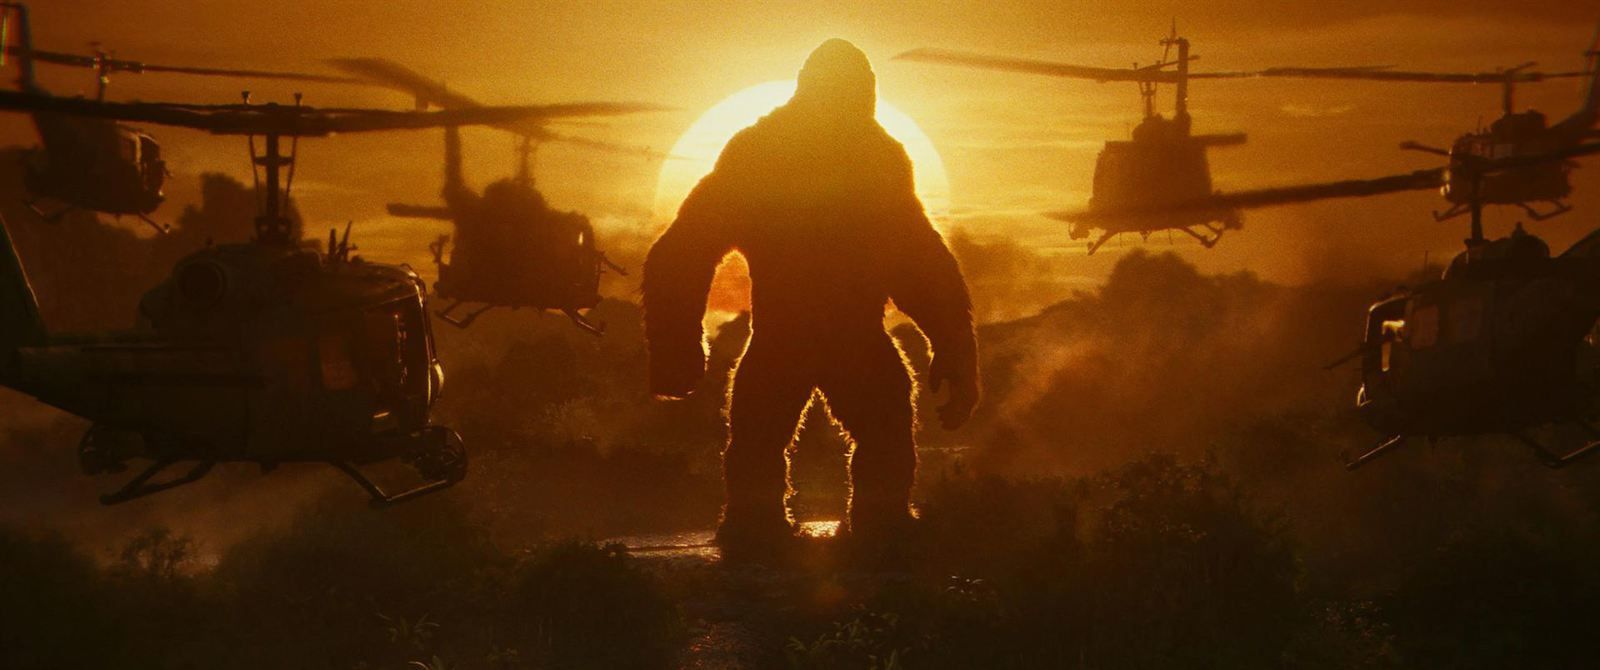 [critique] Kong Skull Island, Prestige Worldwide